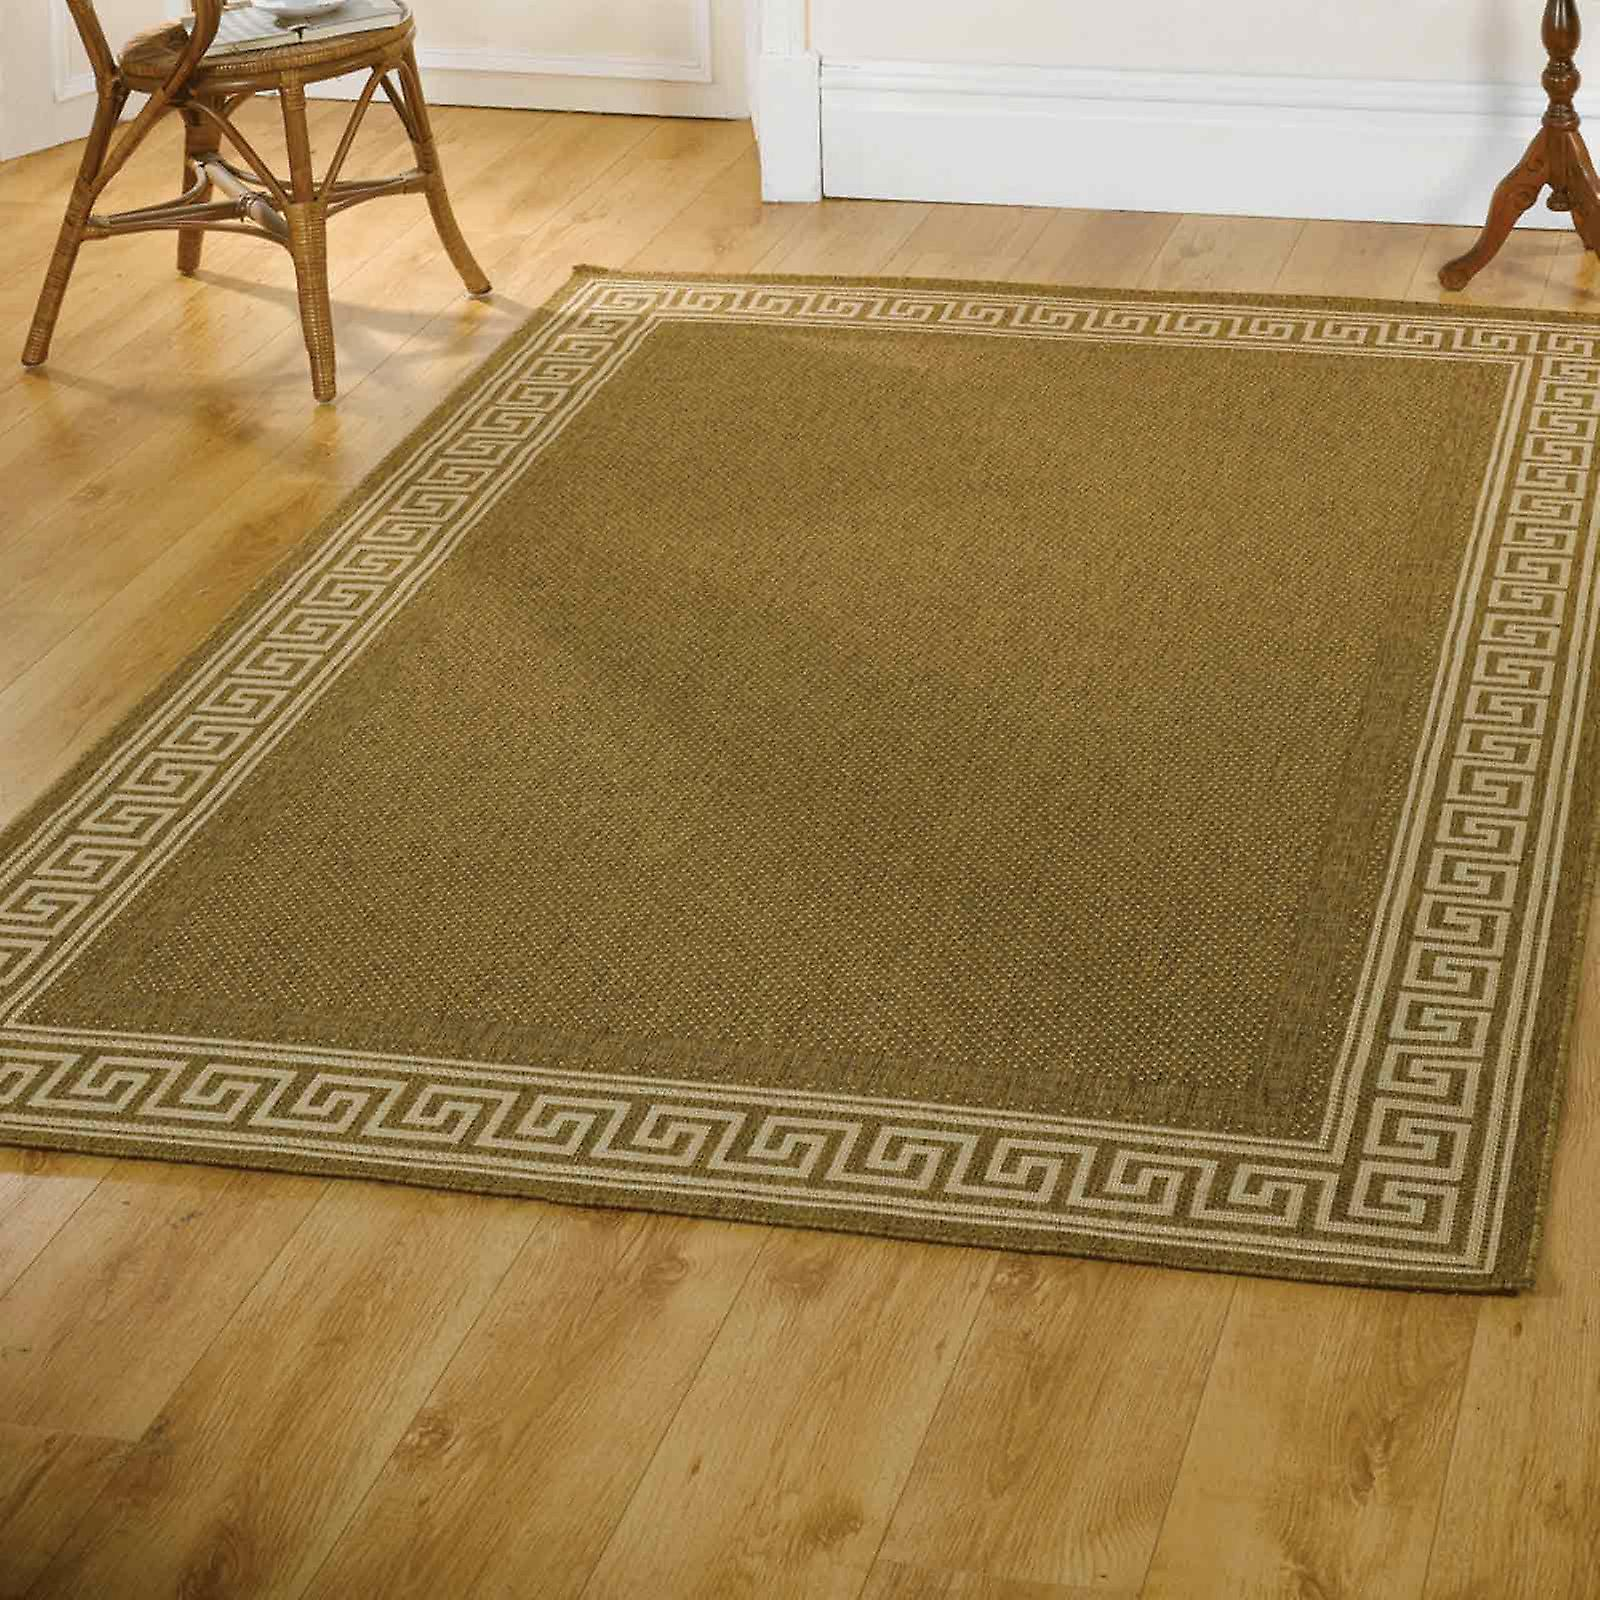 Florence Lorenzo Rugs In Natural